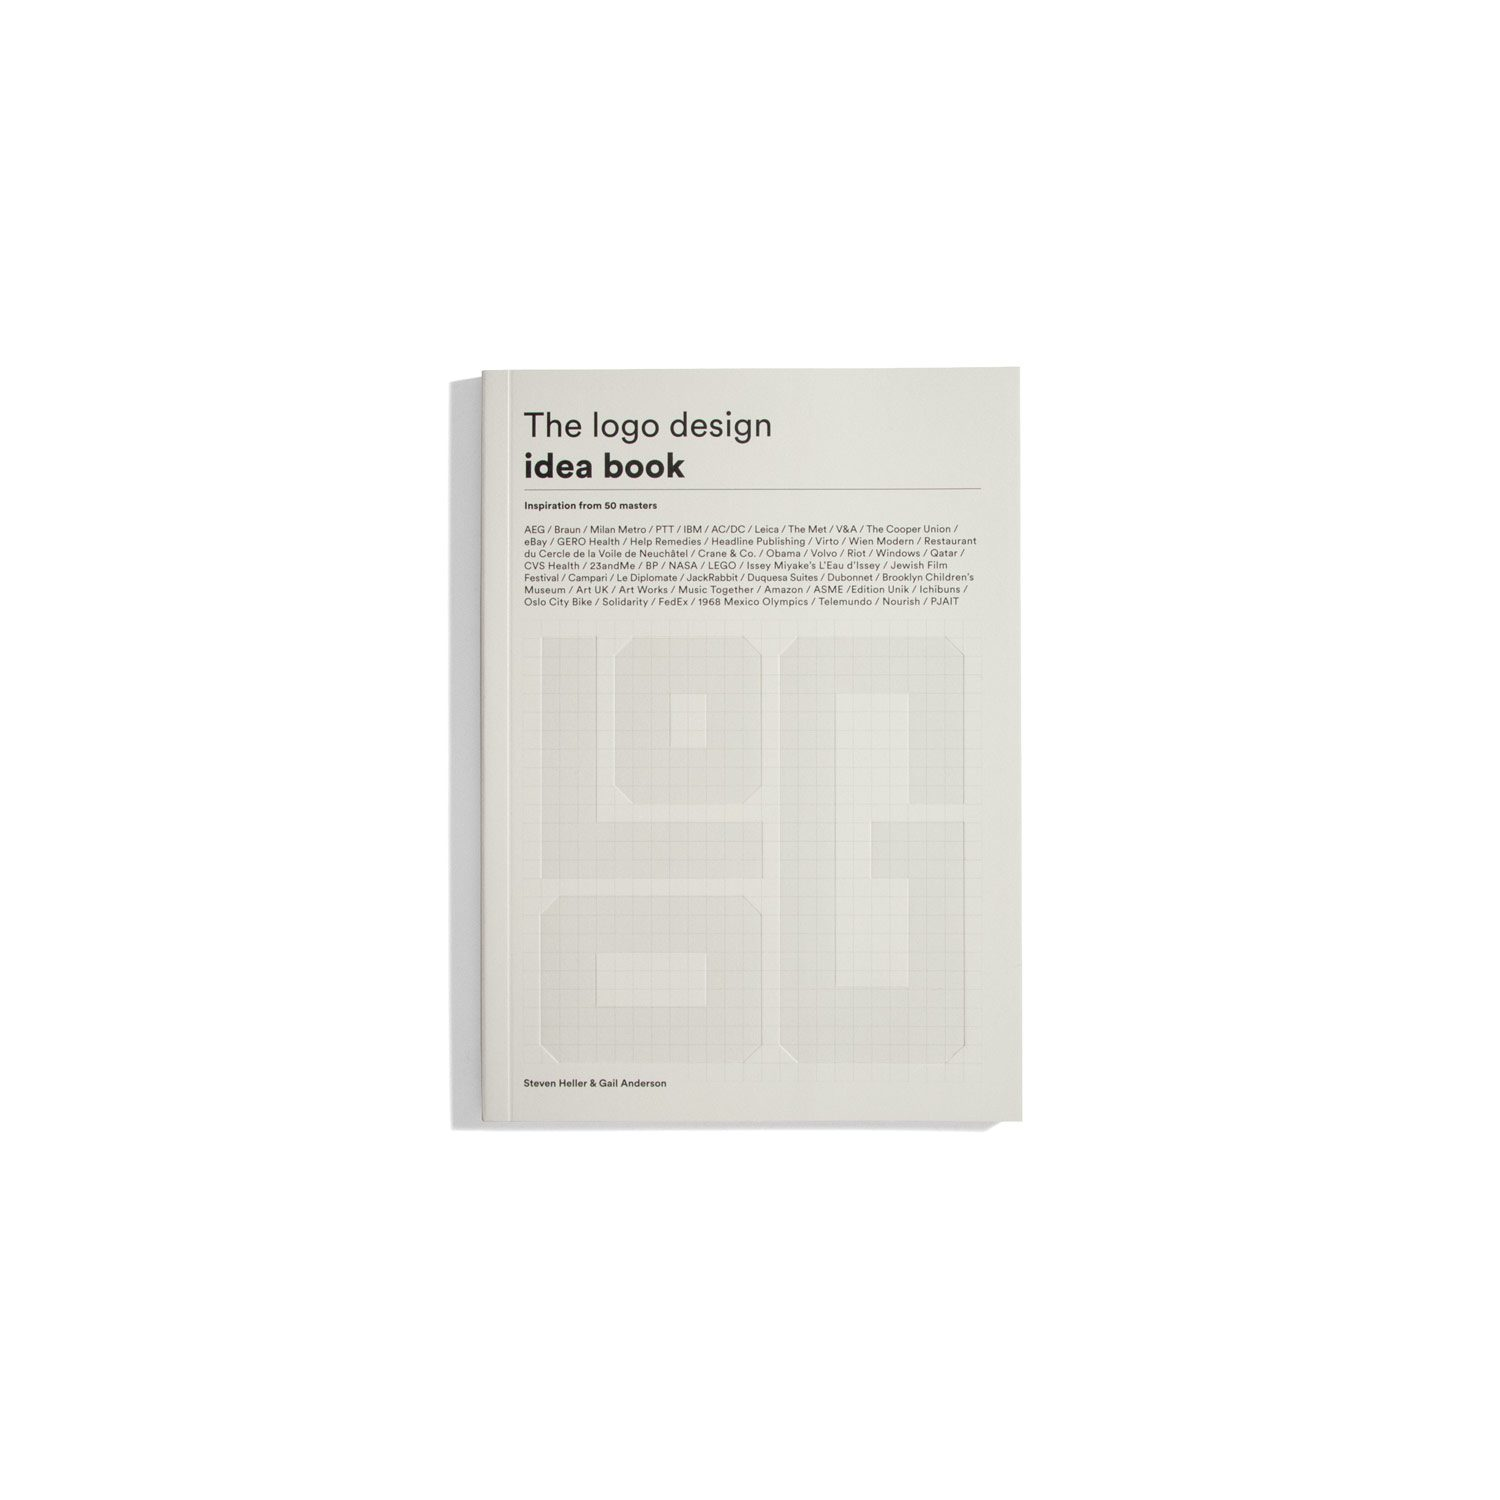 The Logo Design idea book -  Stephen Heller